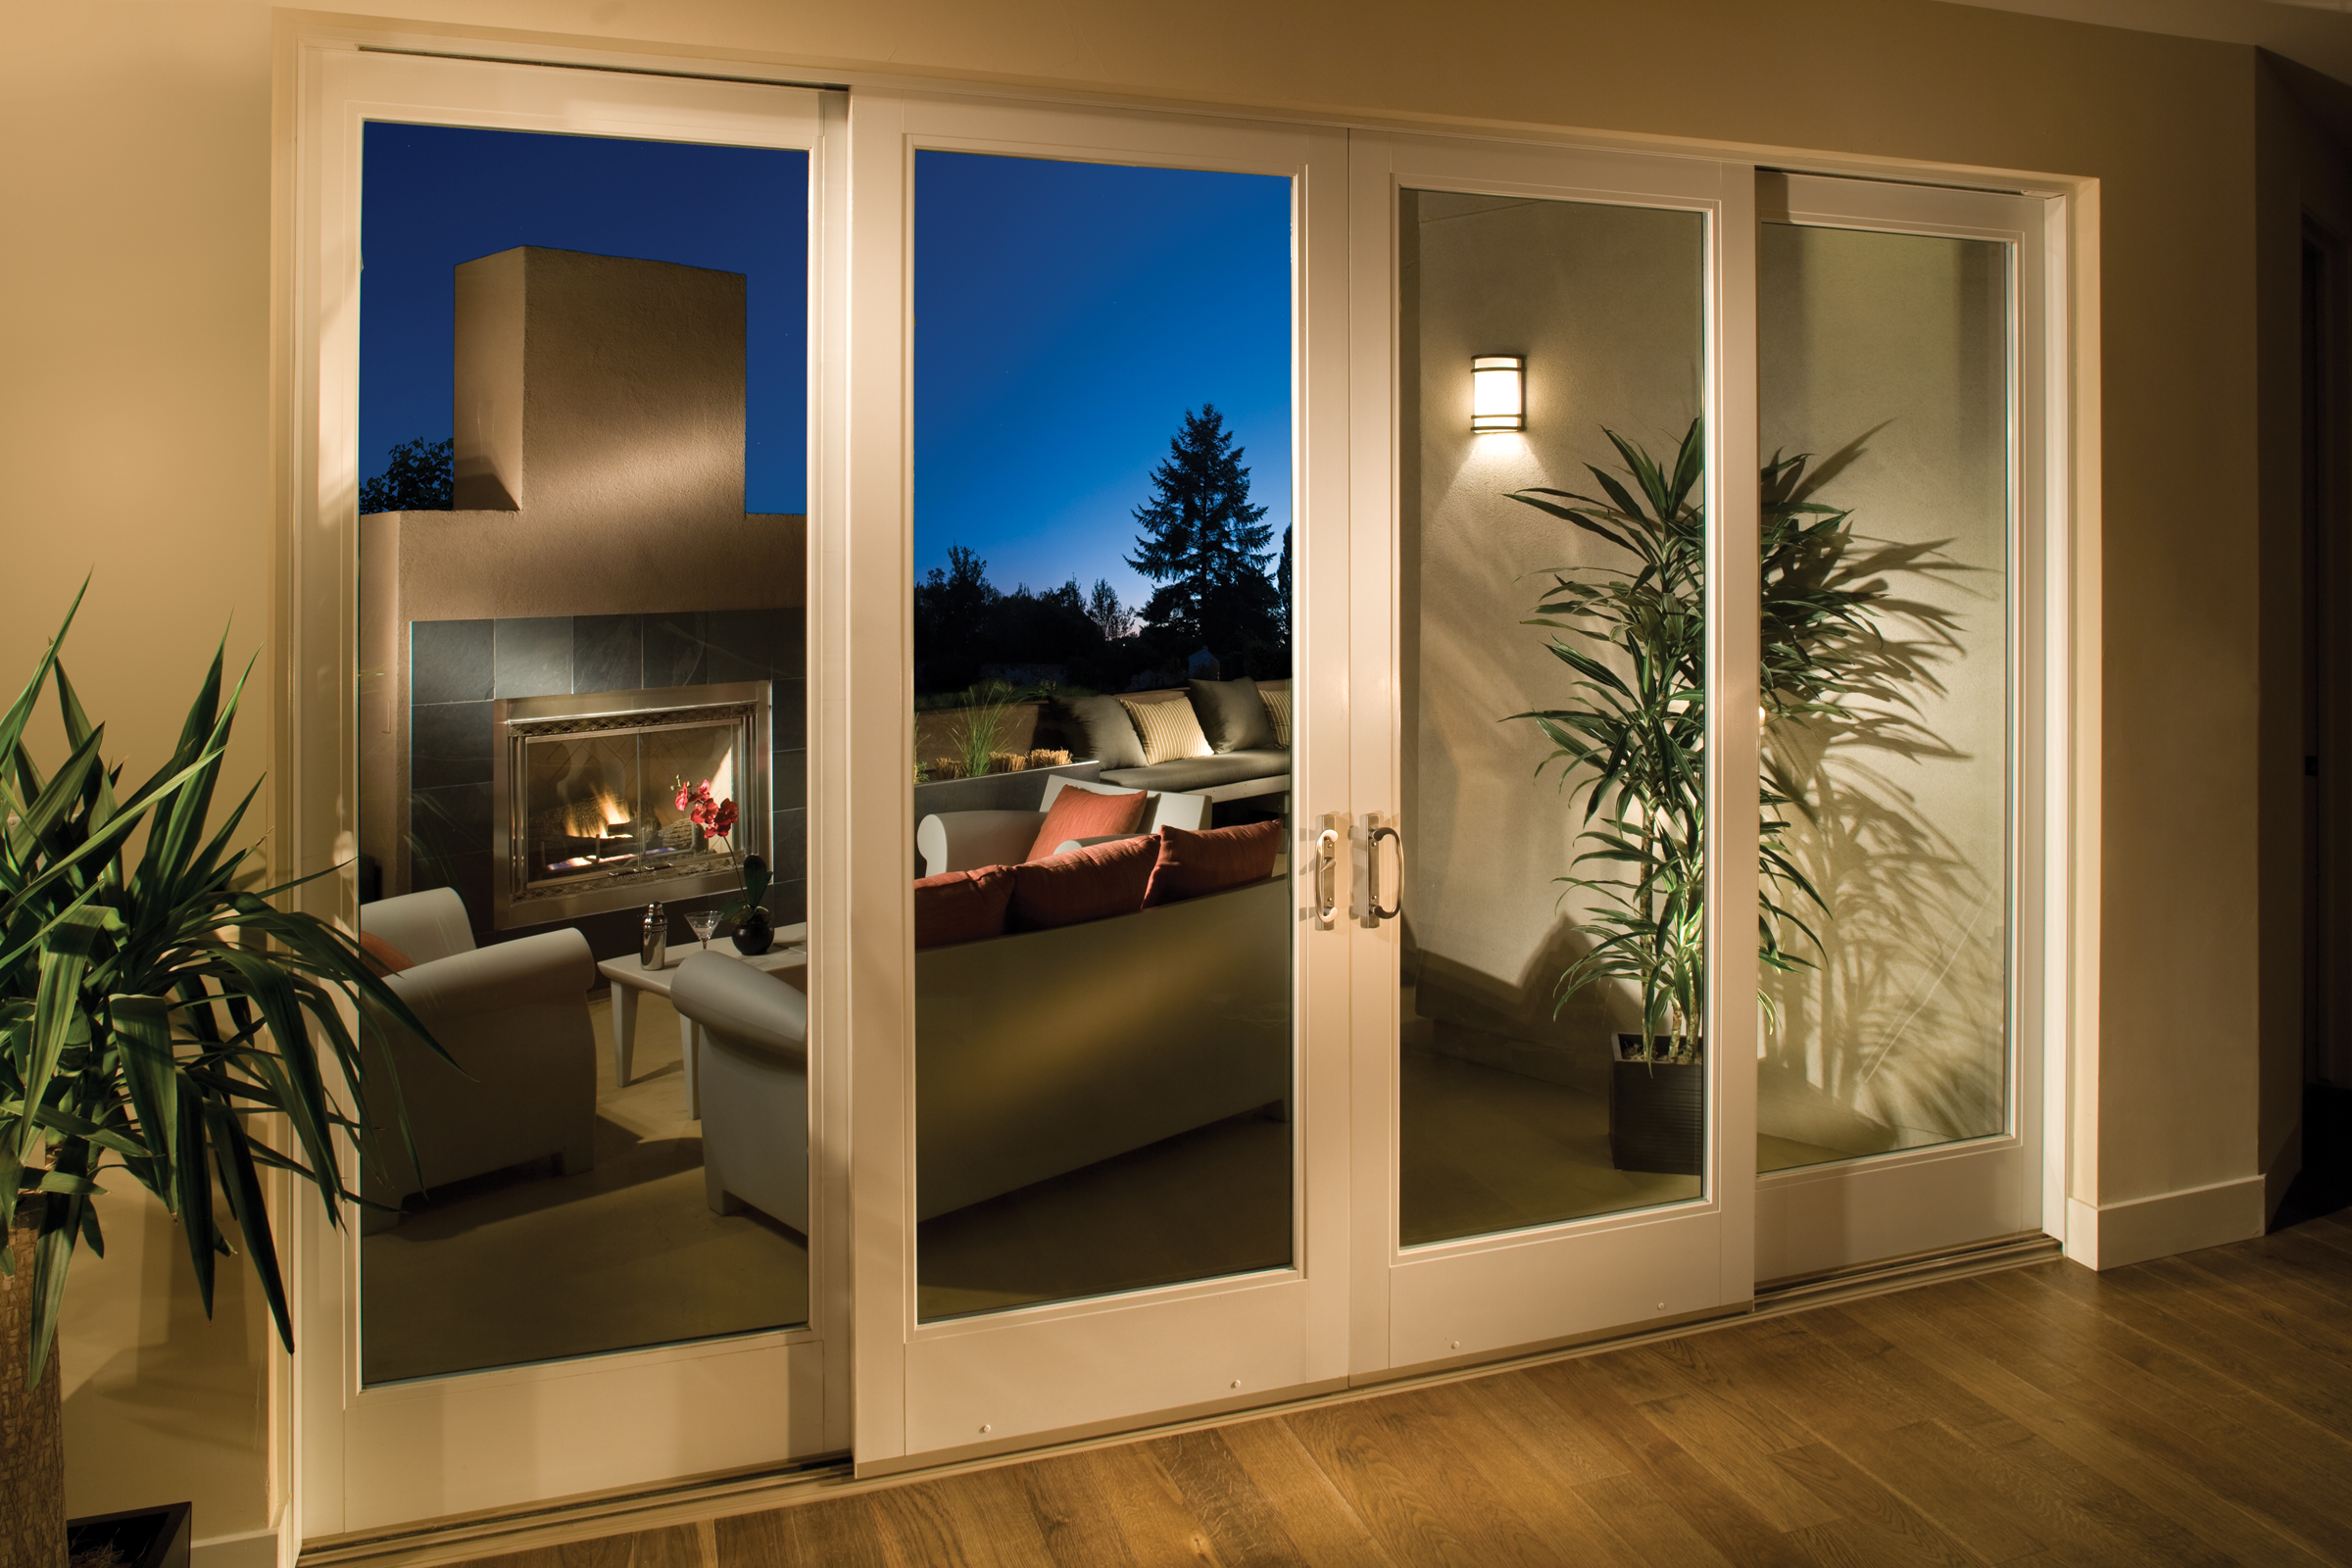 1600 #1470B7 Residential Entry Doors Replacement Window Solutions image Residential Doors And Windows 44432400